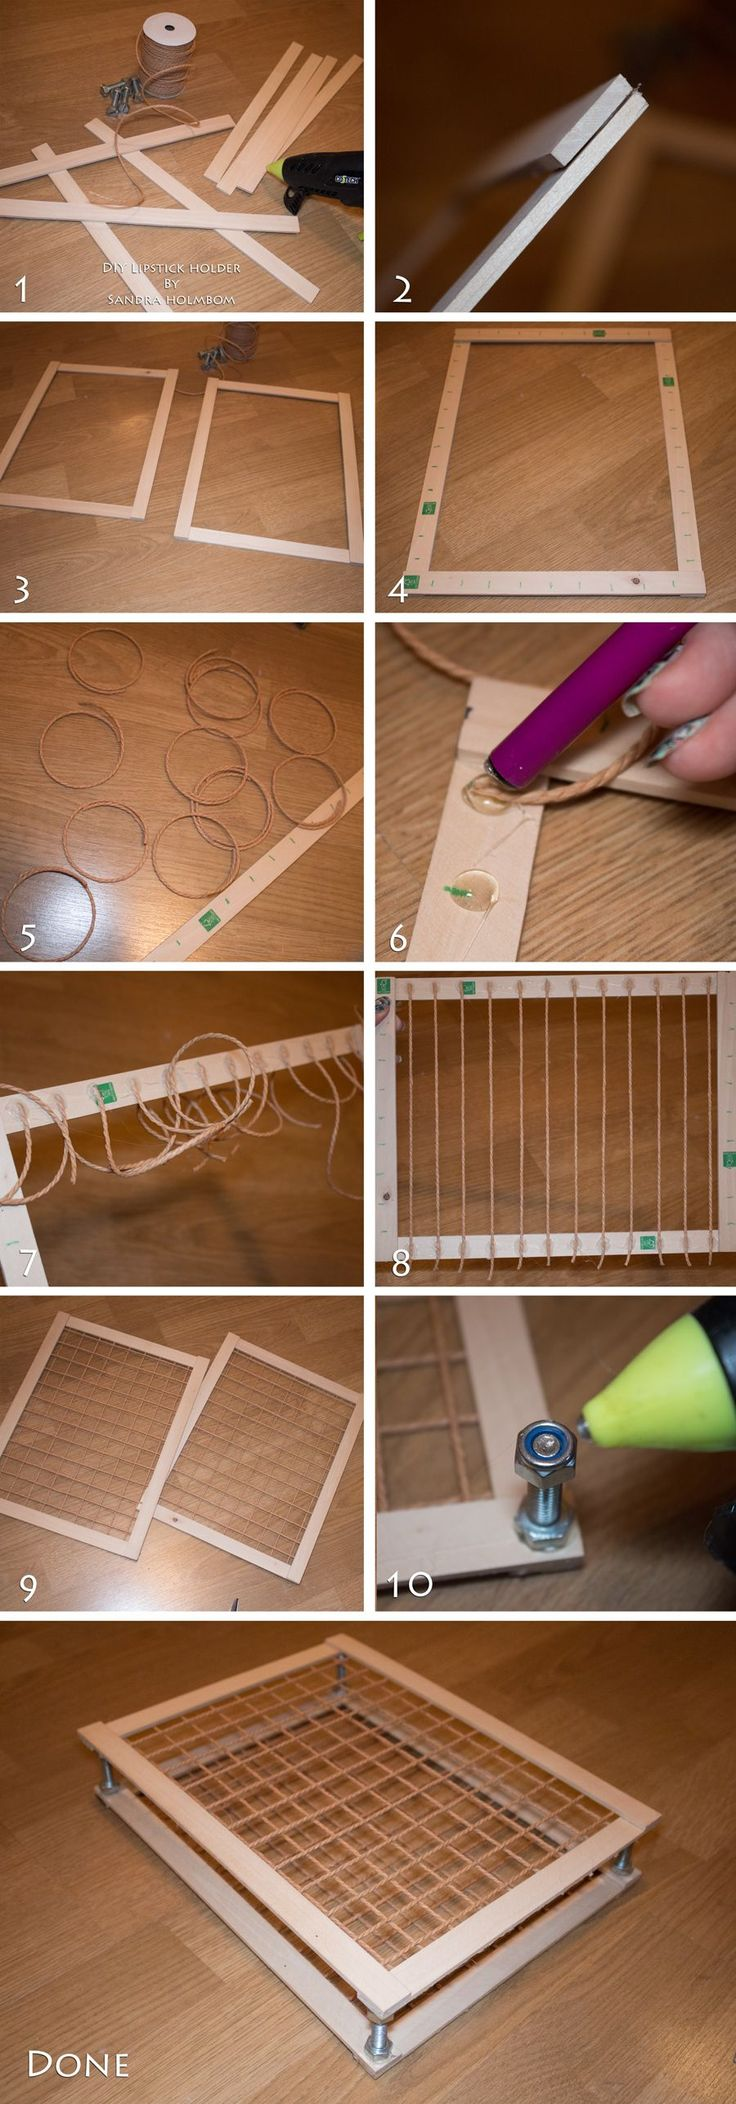 Best 25+ Diy makeup organizer ideas on Pinterest | Diy makeup ...